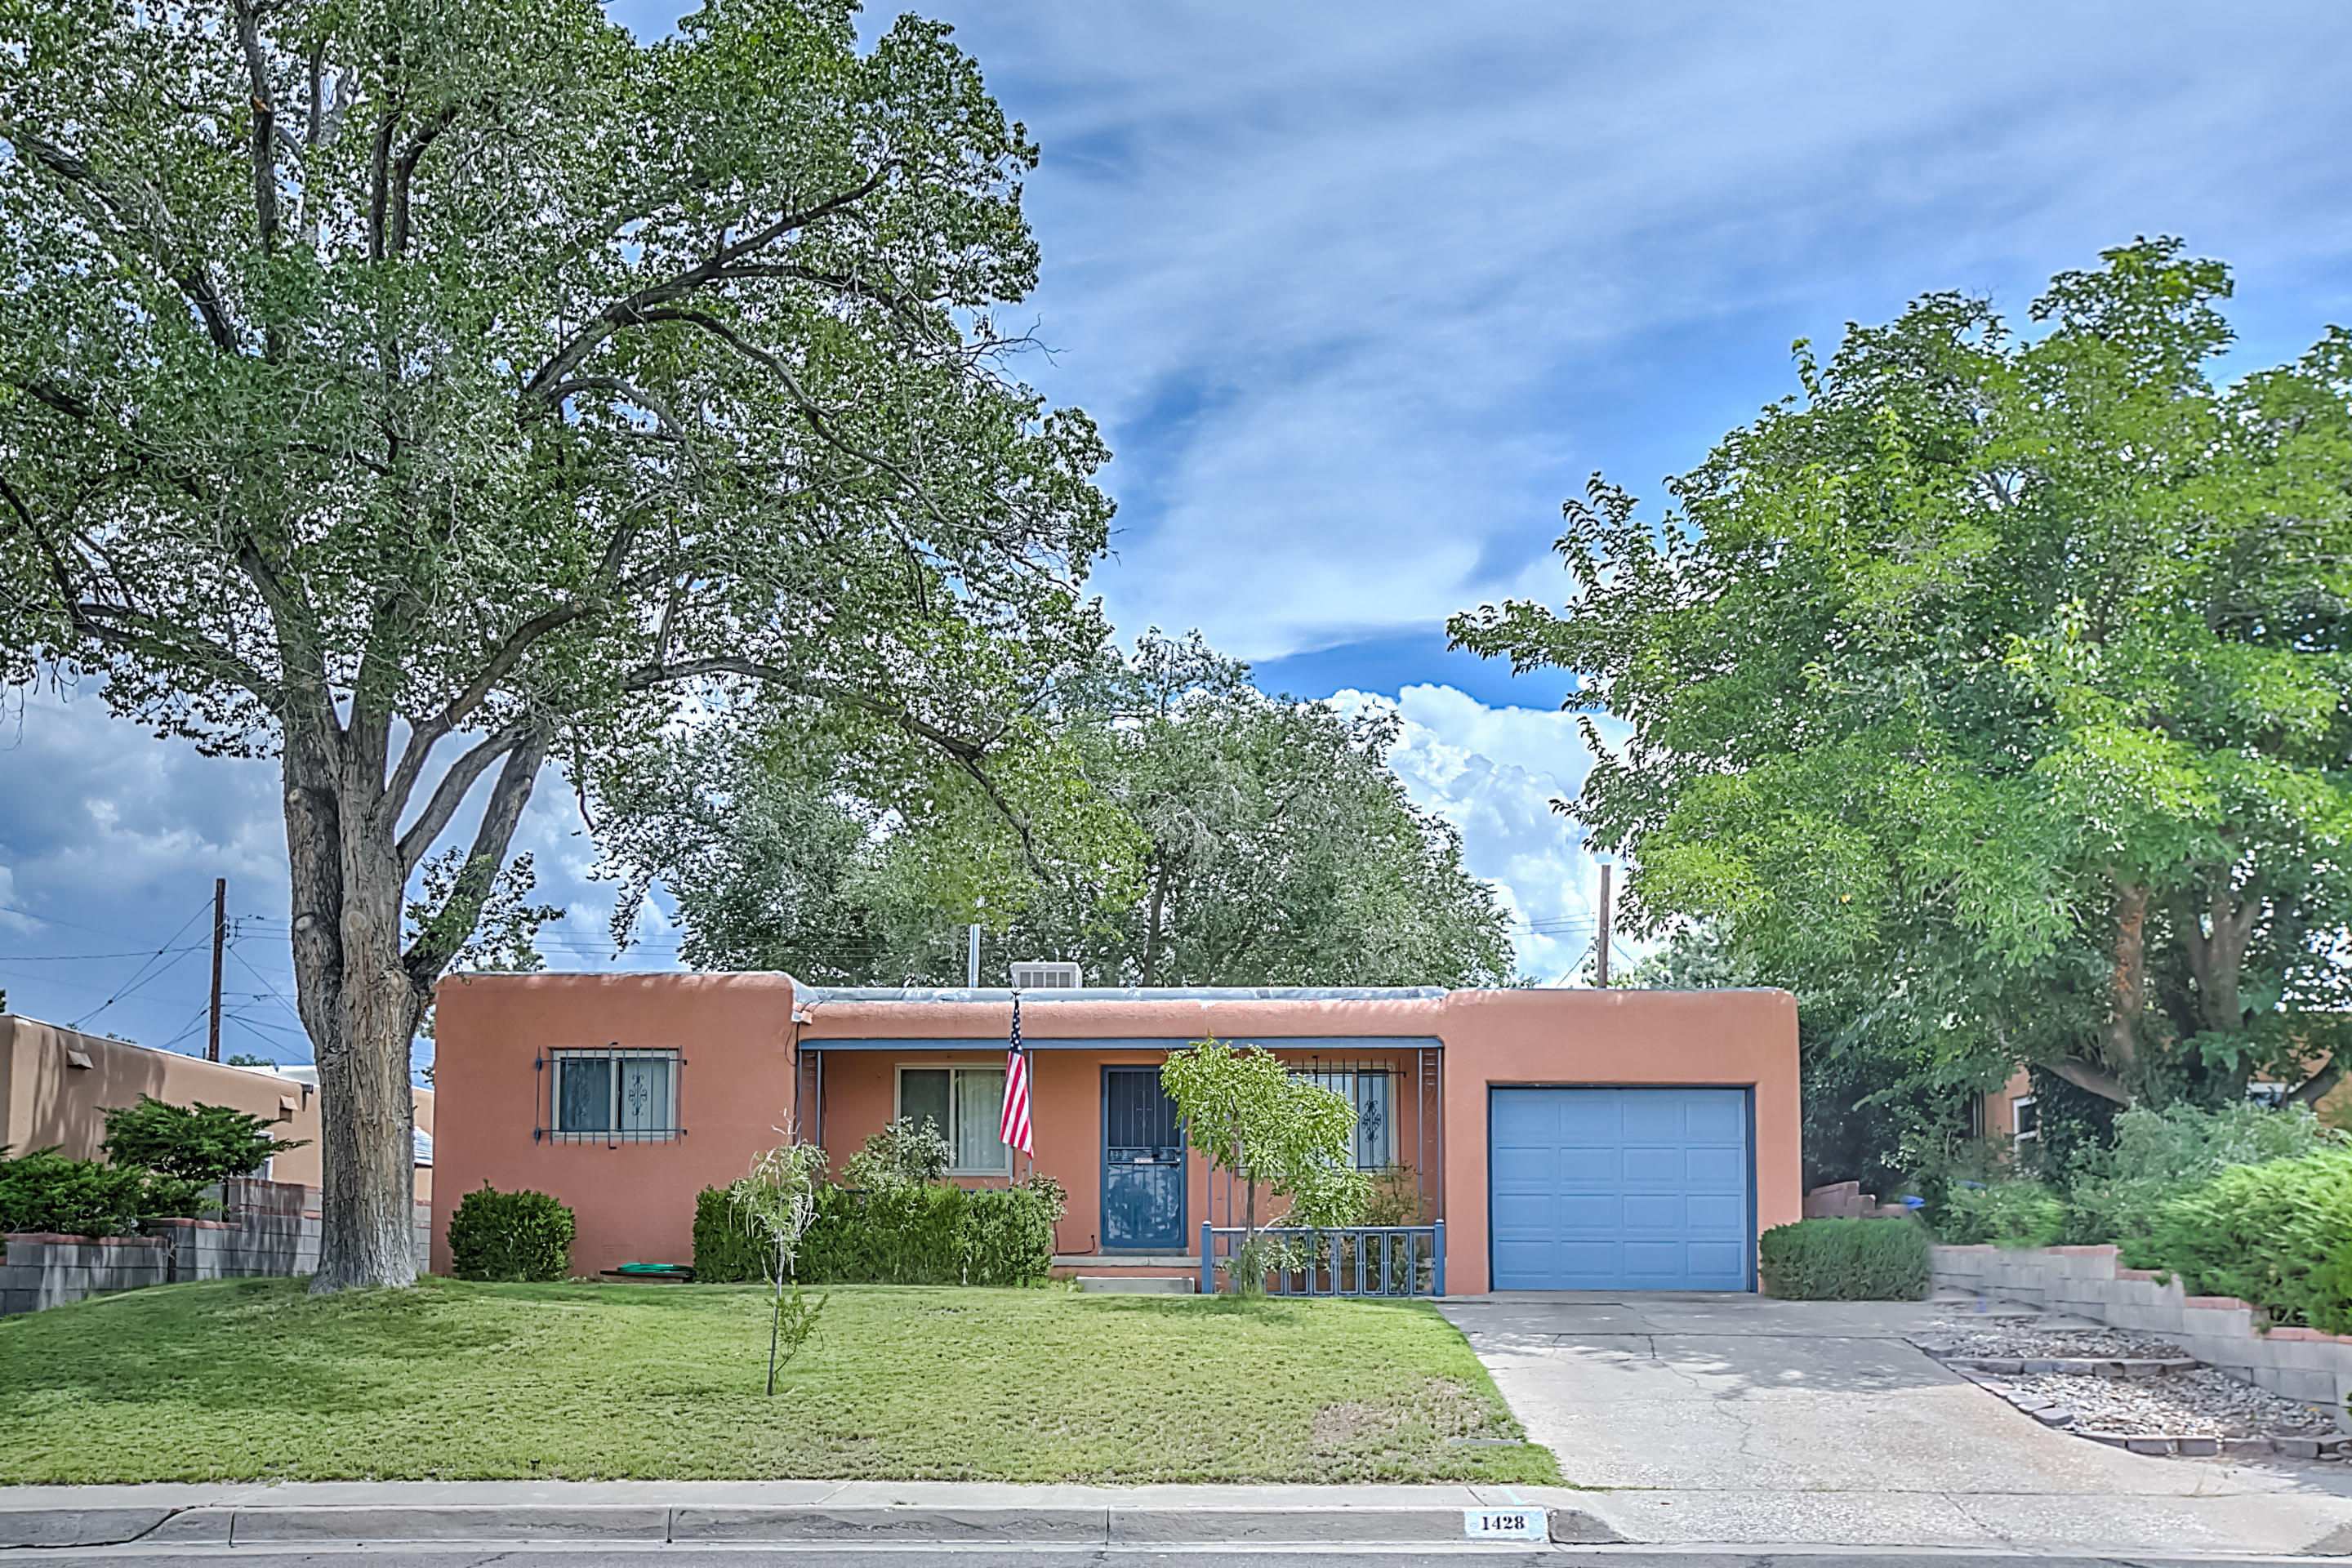 Take a look at this beautifully maintained home near Altura Park and UNM. This home has freshly painted exterior, original hardwood floors, spacious add-on with a fireplace, and a large back yard. With two living areas and an open kitchen, this is a great place for entertaining family and guests. Situated close to Nob Hill, Local Shops, and freeway access, this home is centrally located and ready to go!